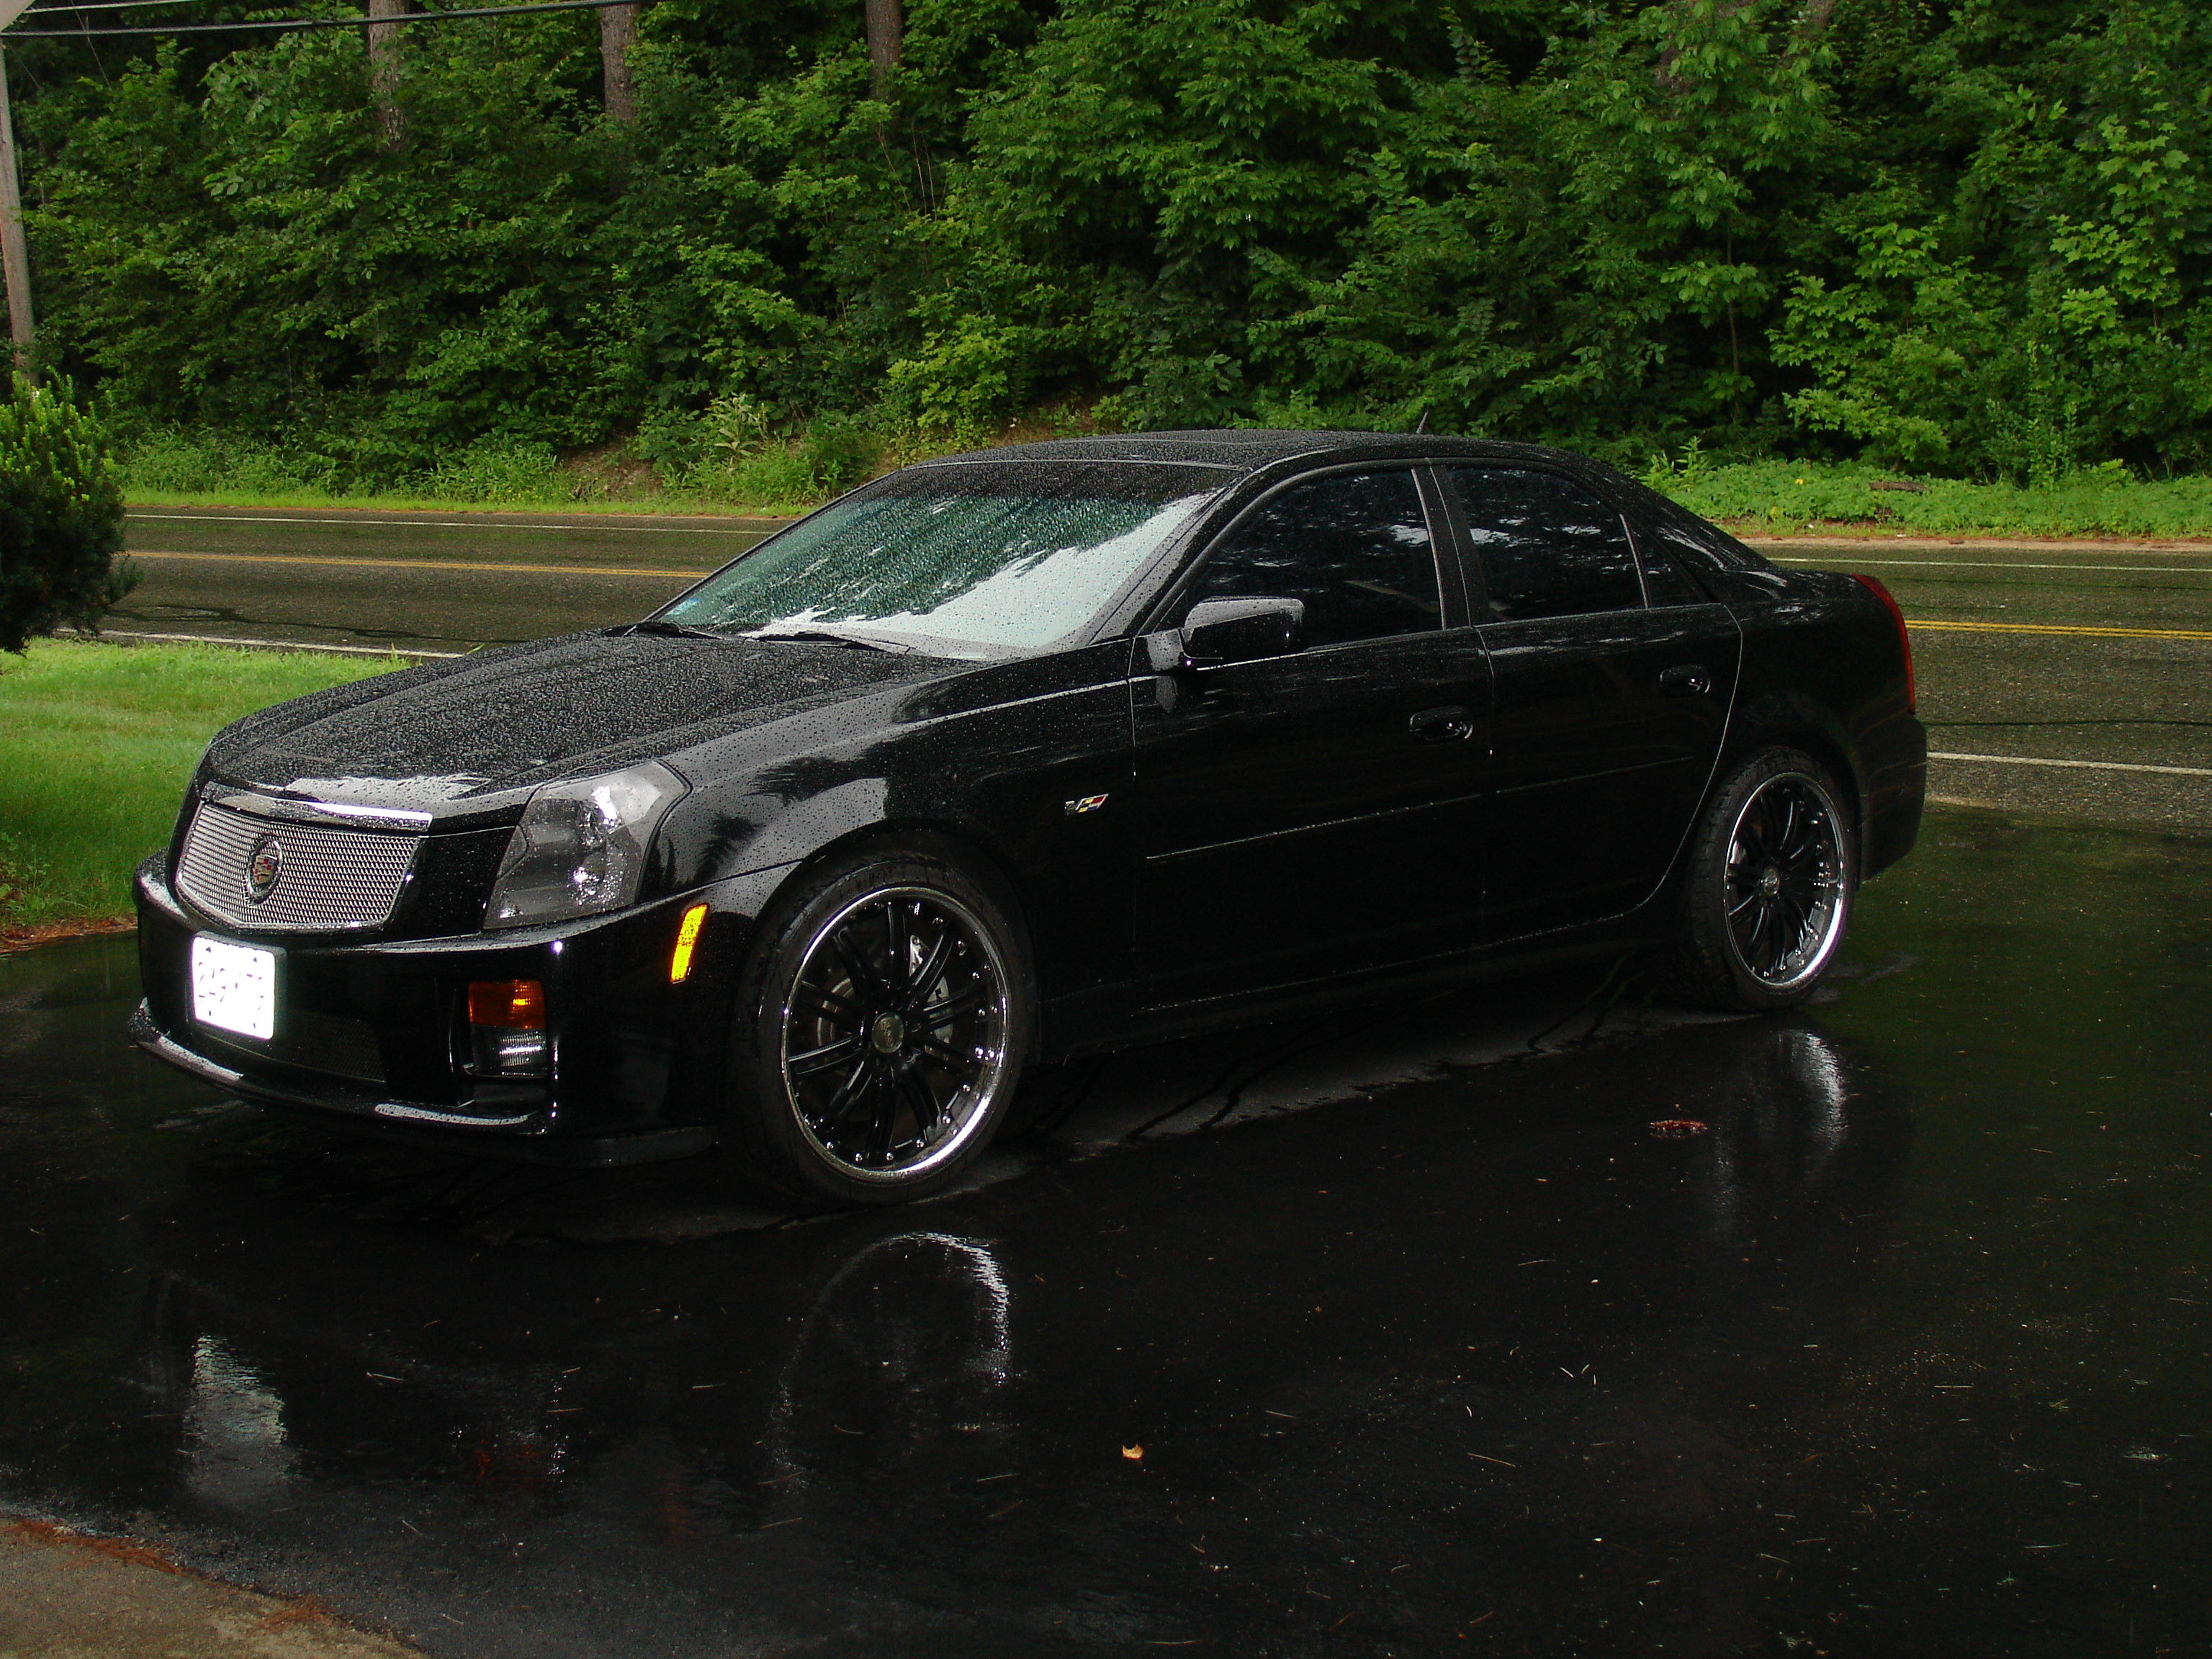 image for download speed car v corvette updates cadillac of tremec sale cheap ls cts